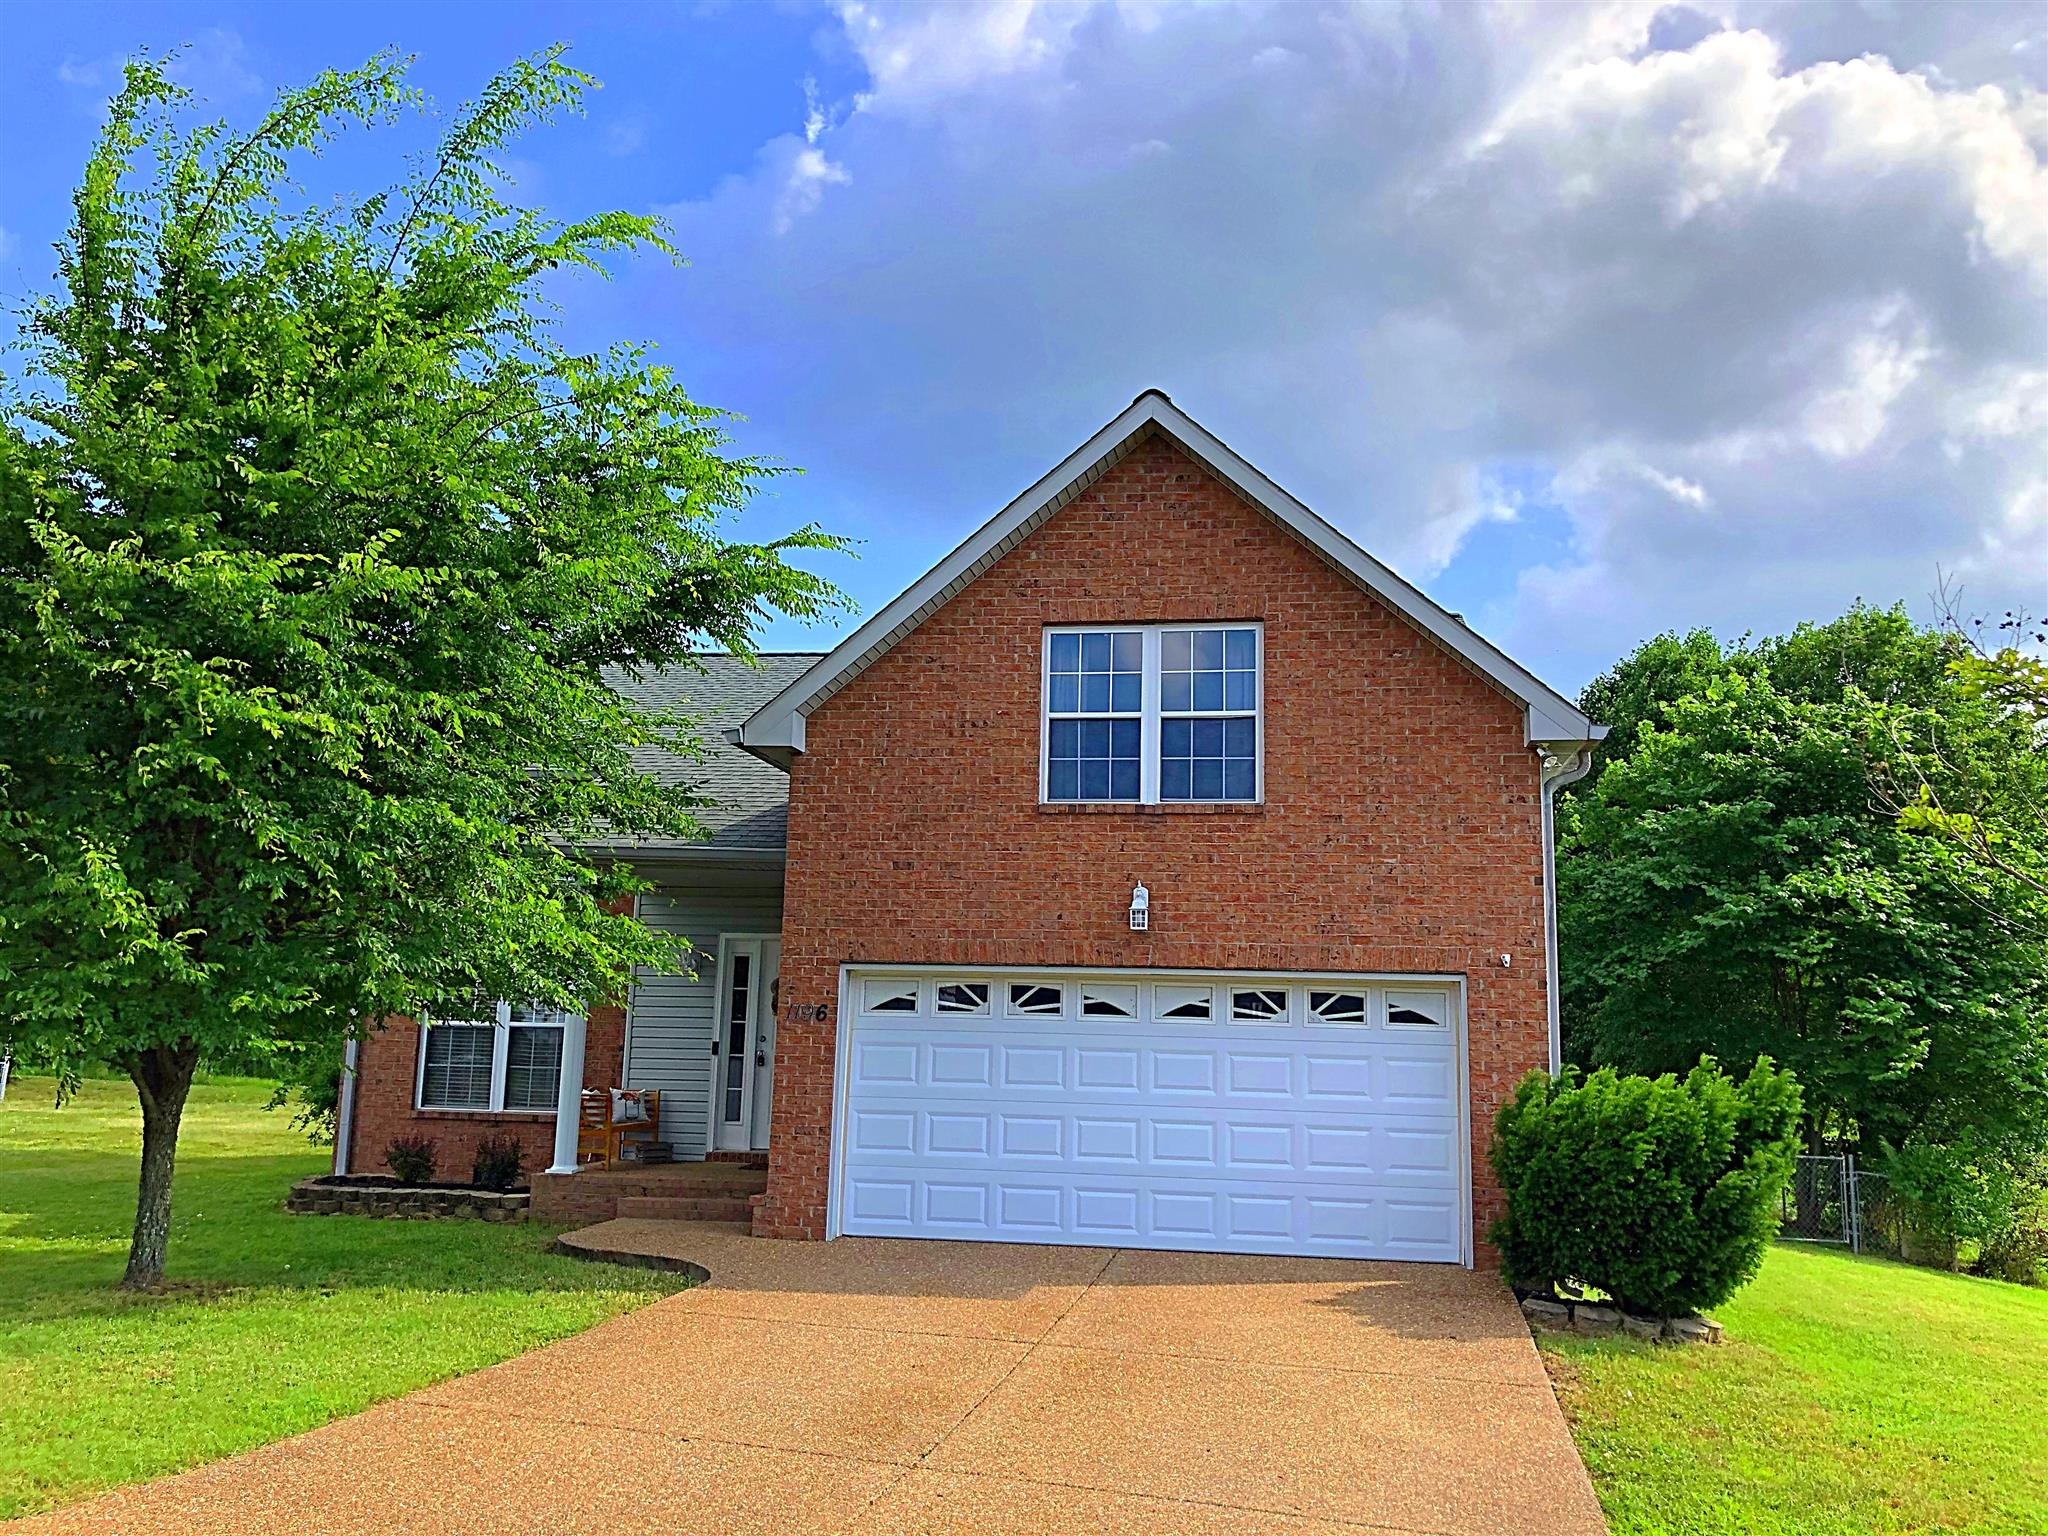 1196 Flat Stone Dr 37066 - One of Gallatin Homes for Sale